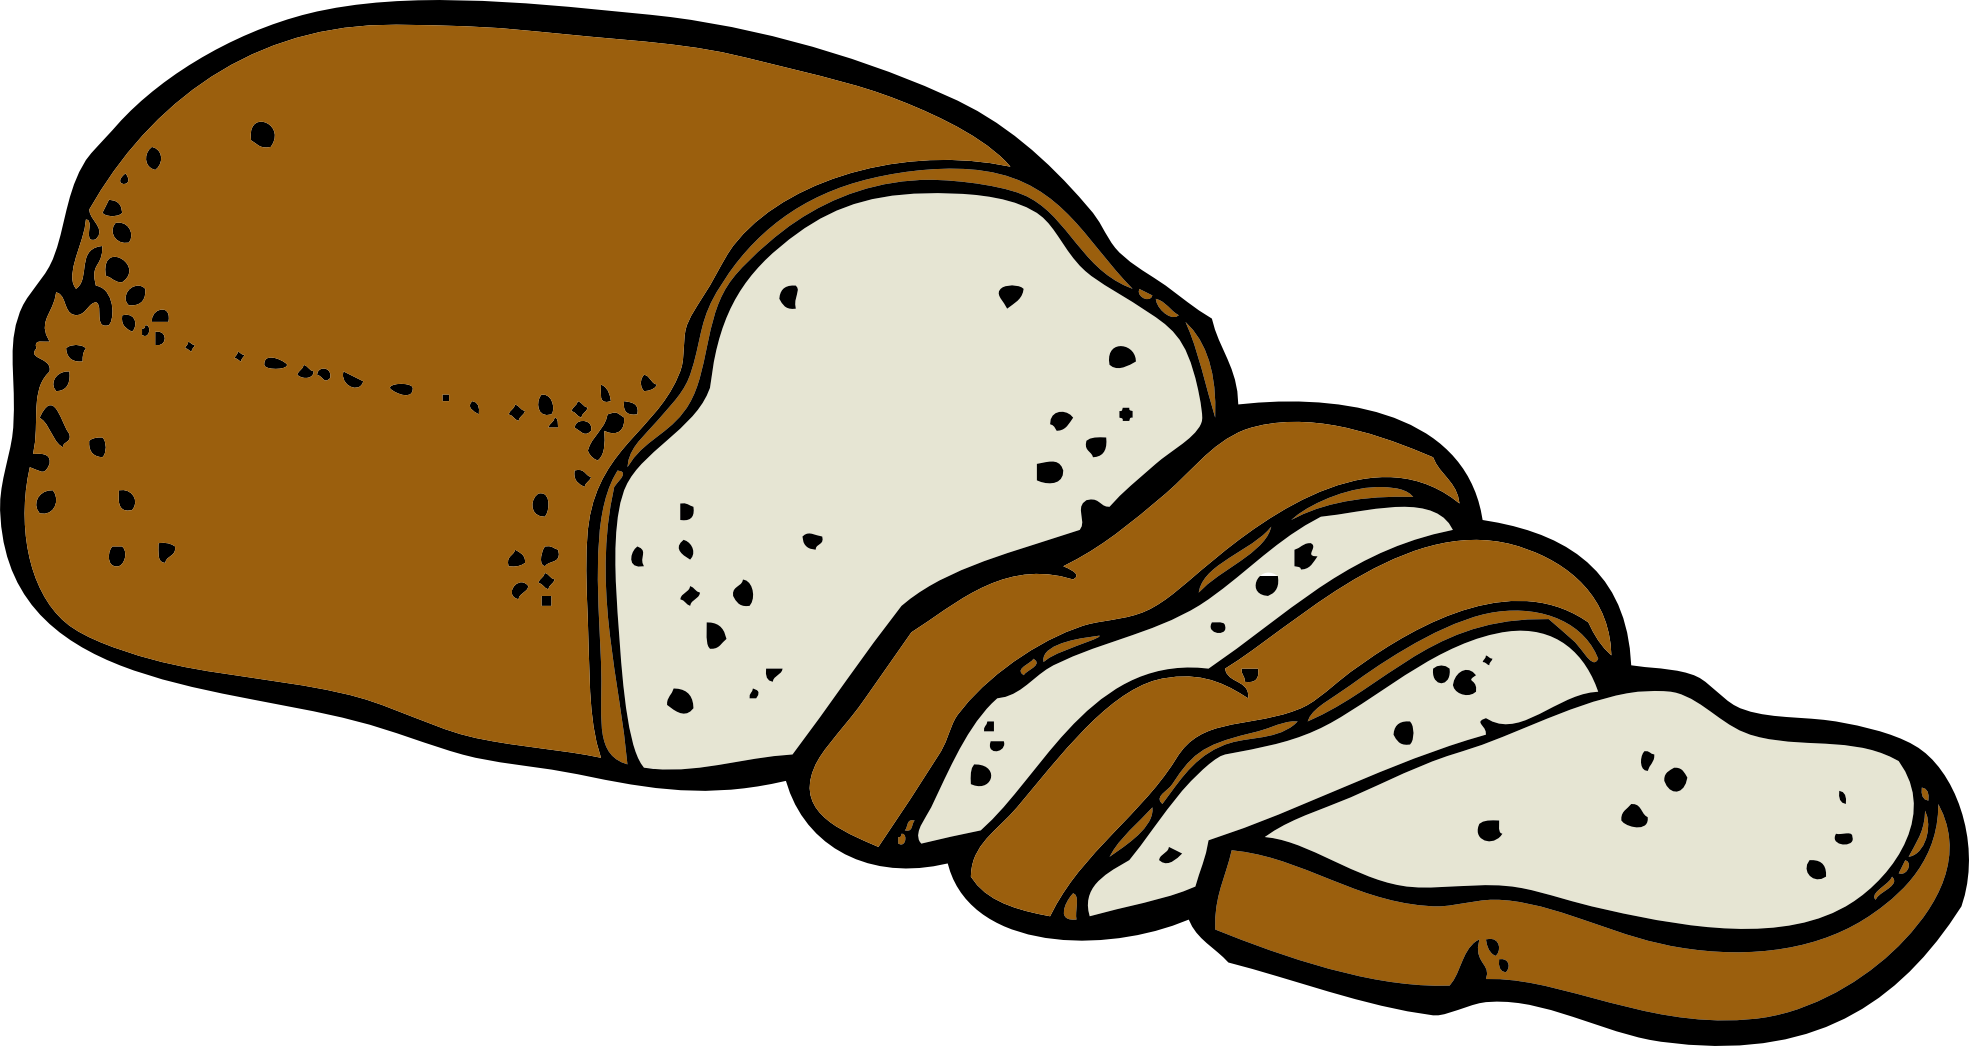 Bread clipart drawn Image Cliparting art images free